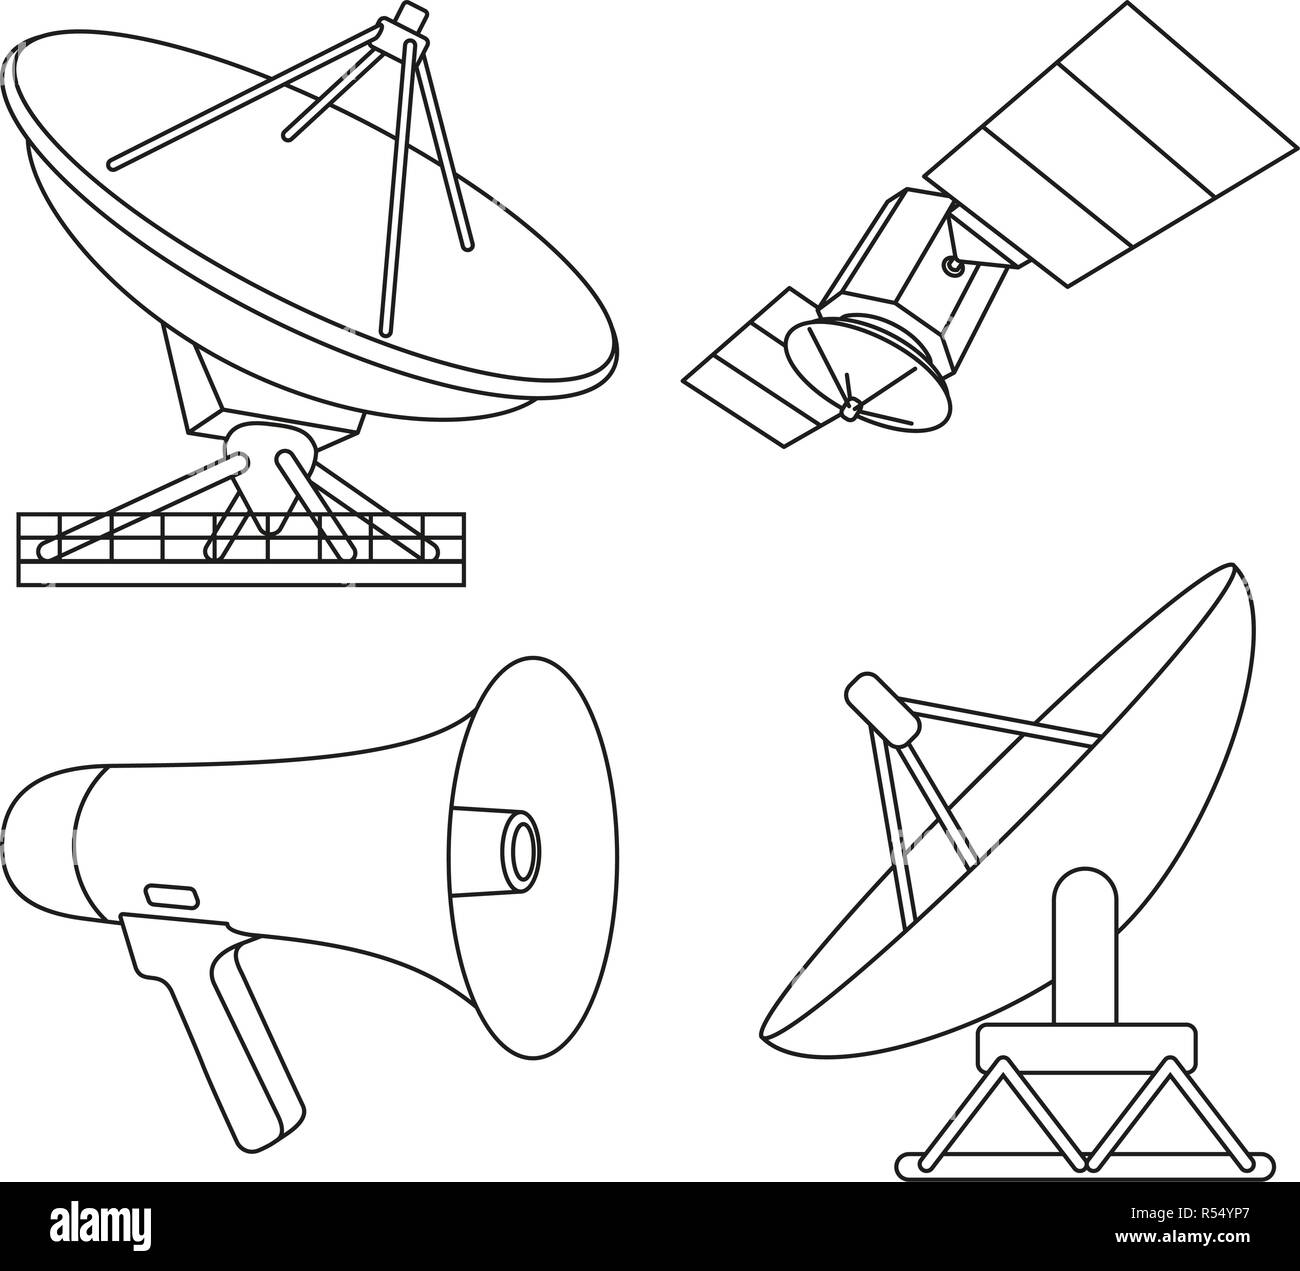 Line art black white 4 telecommunication elements - Stock Vector